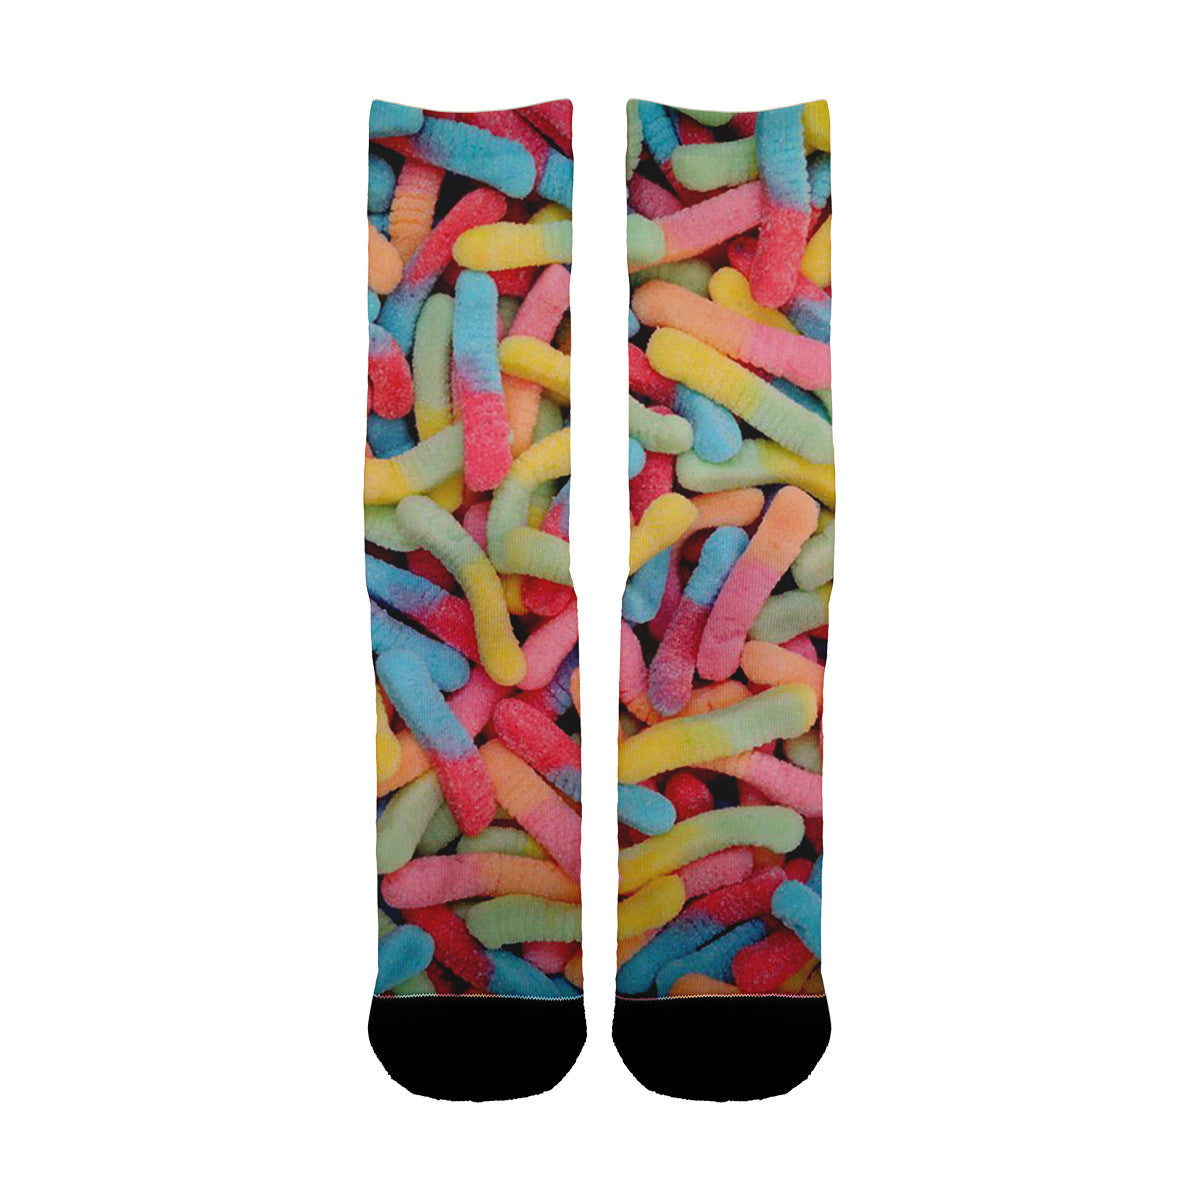 Sour Worms Socks - Shweeet